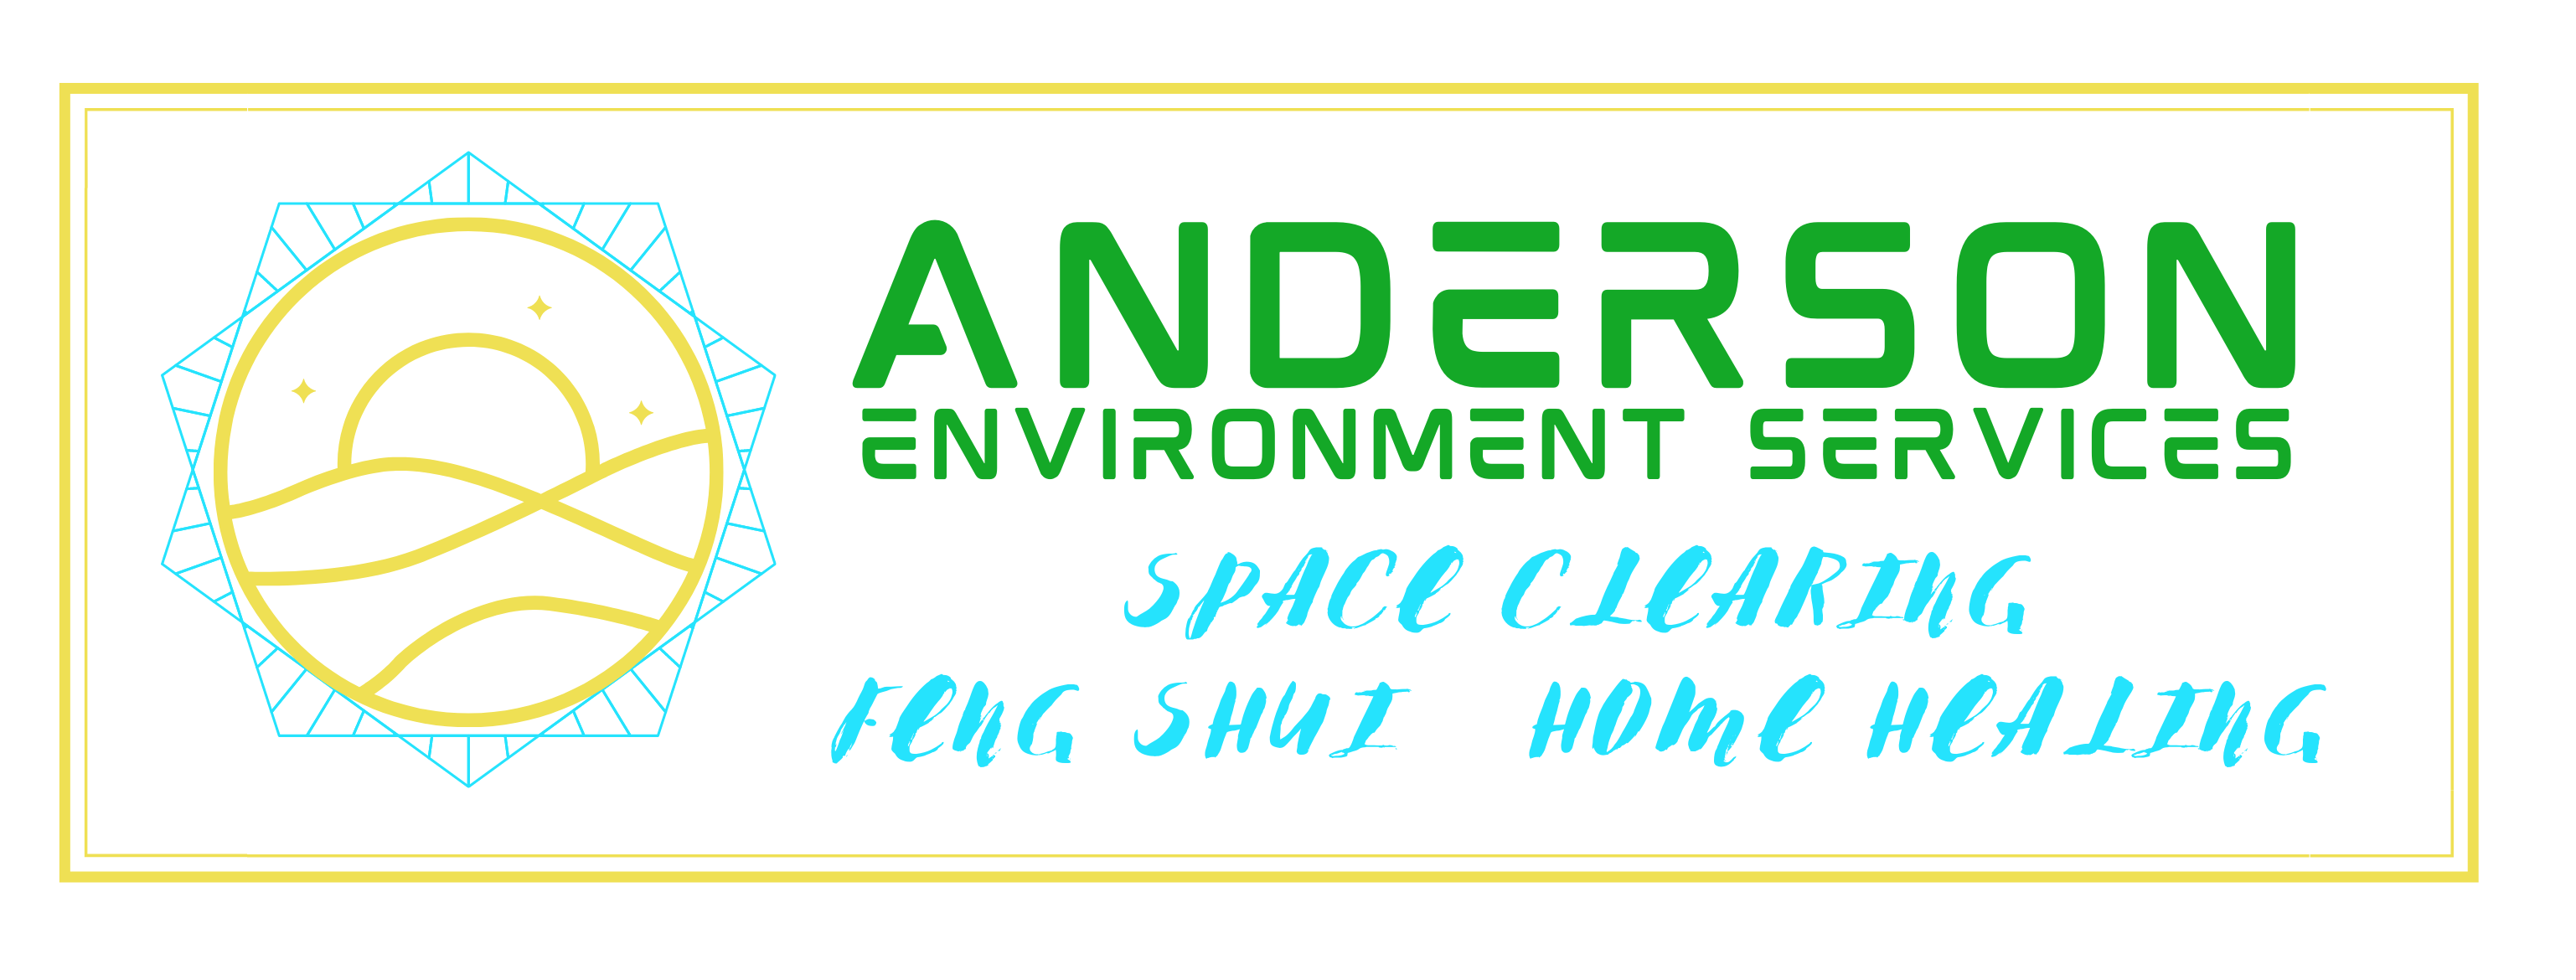 Anderson Environment Services